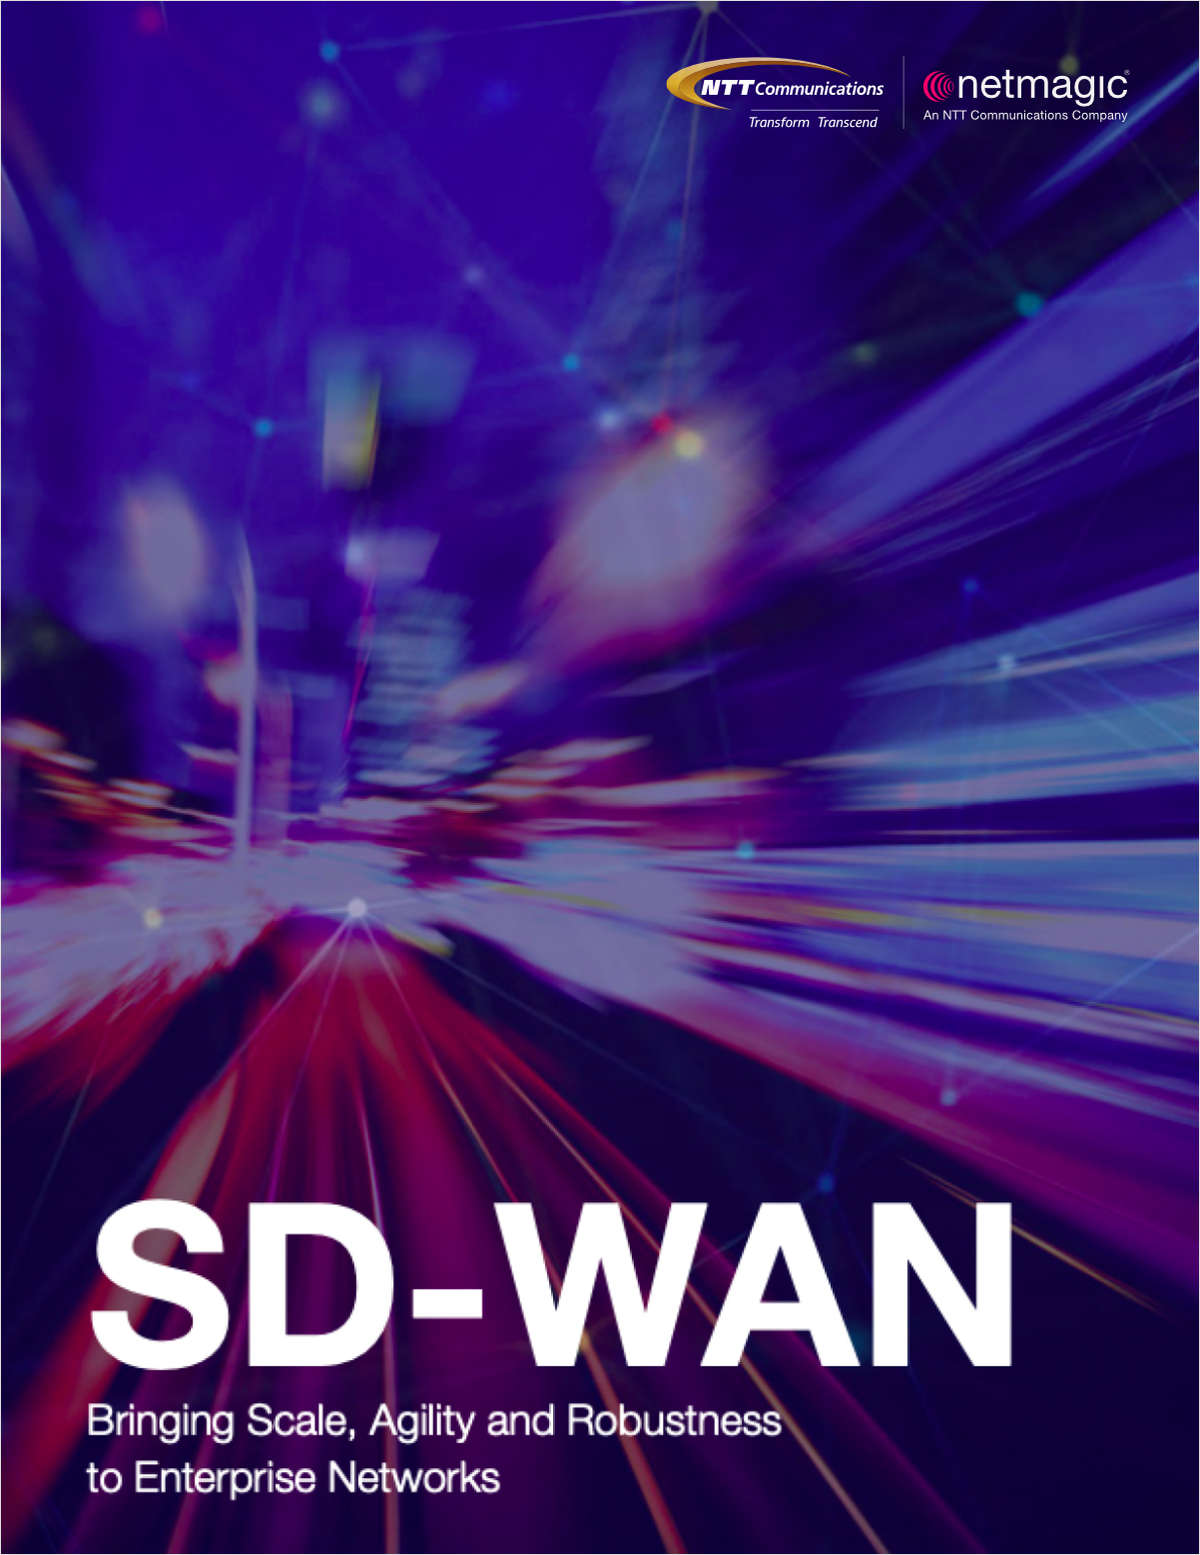 SD-WAN: Bringing Scale, Agility and Robustness to Enterprise Networks